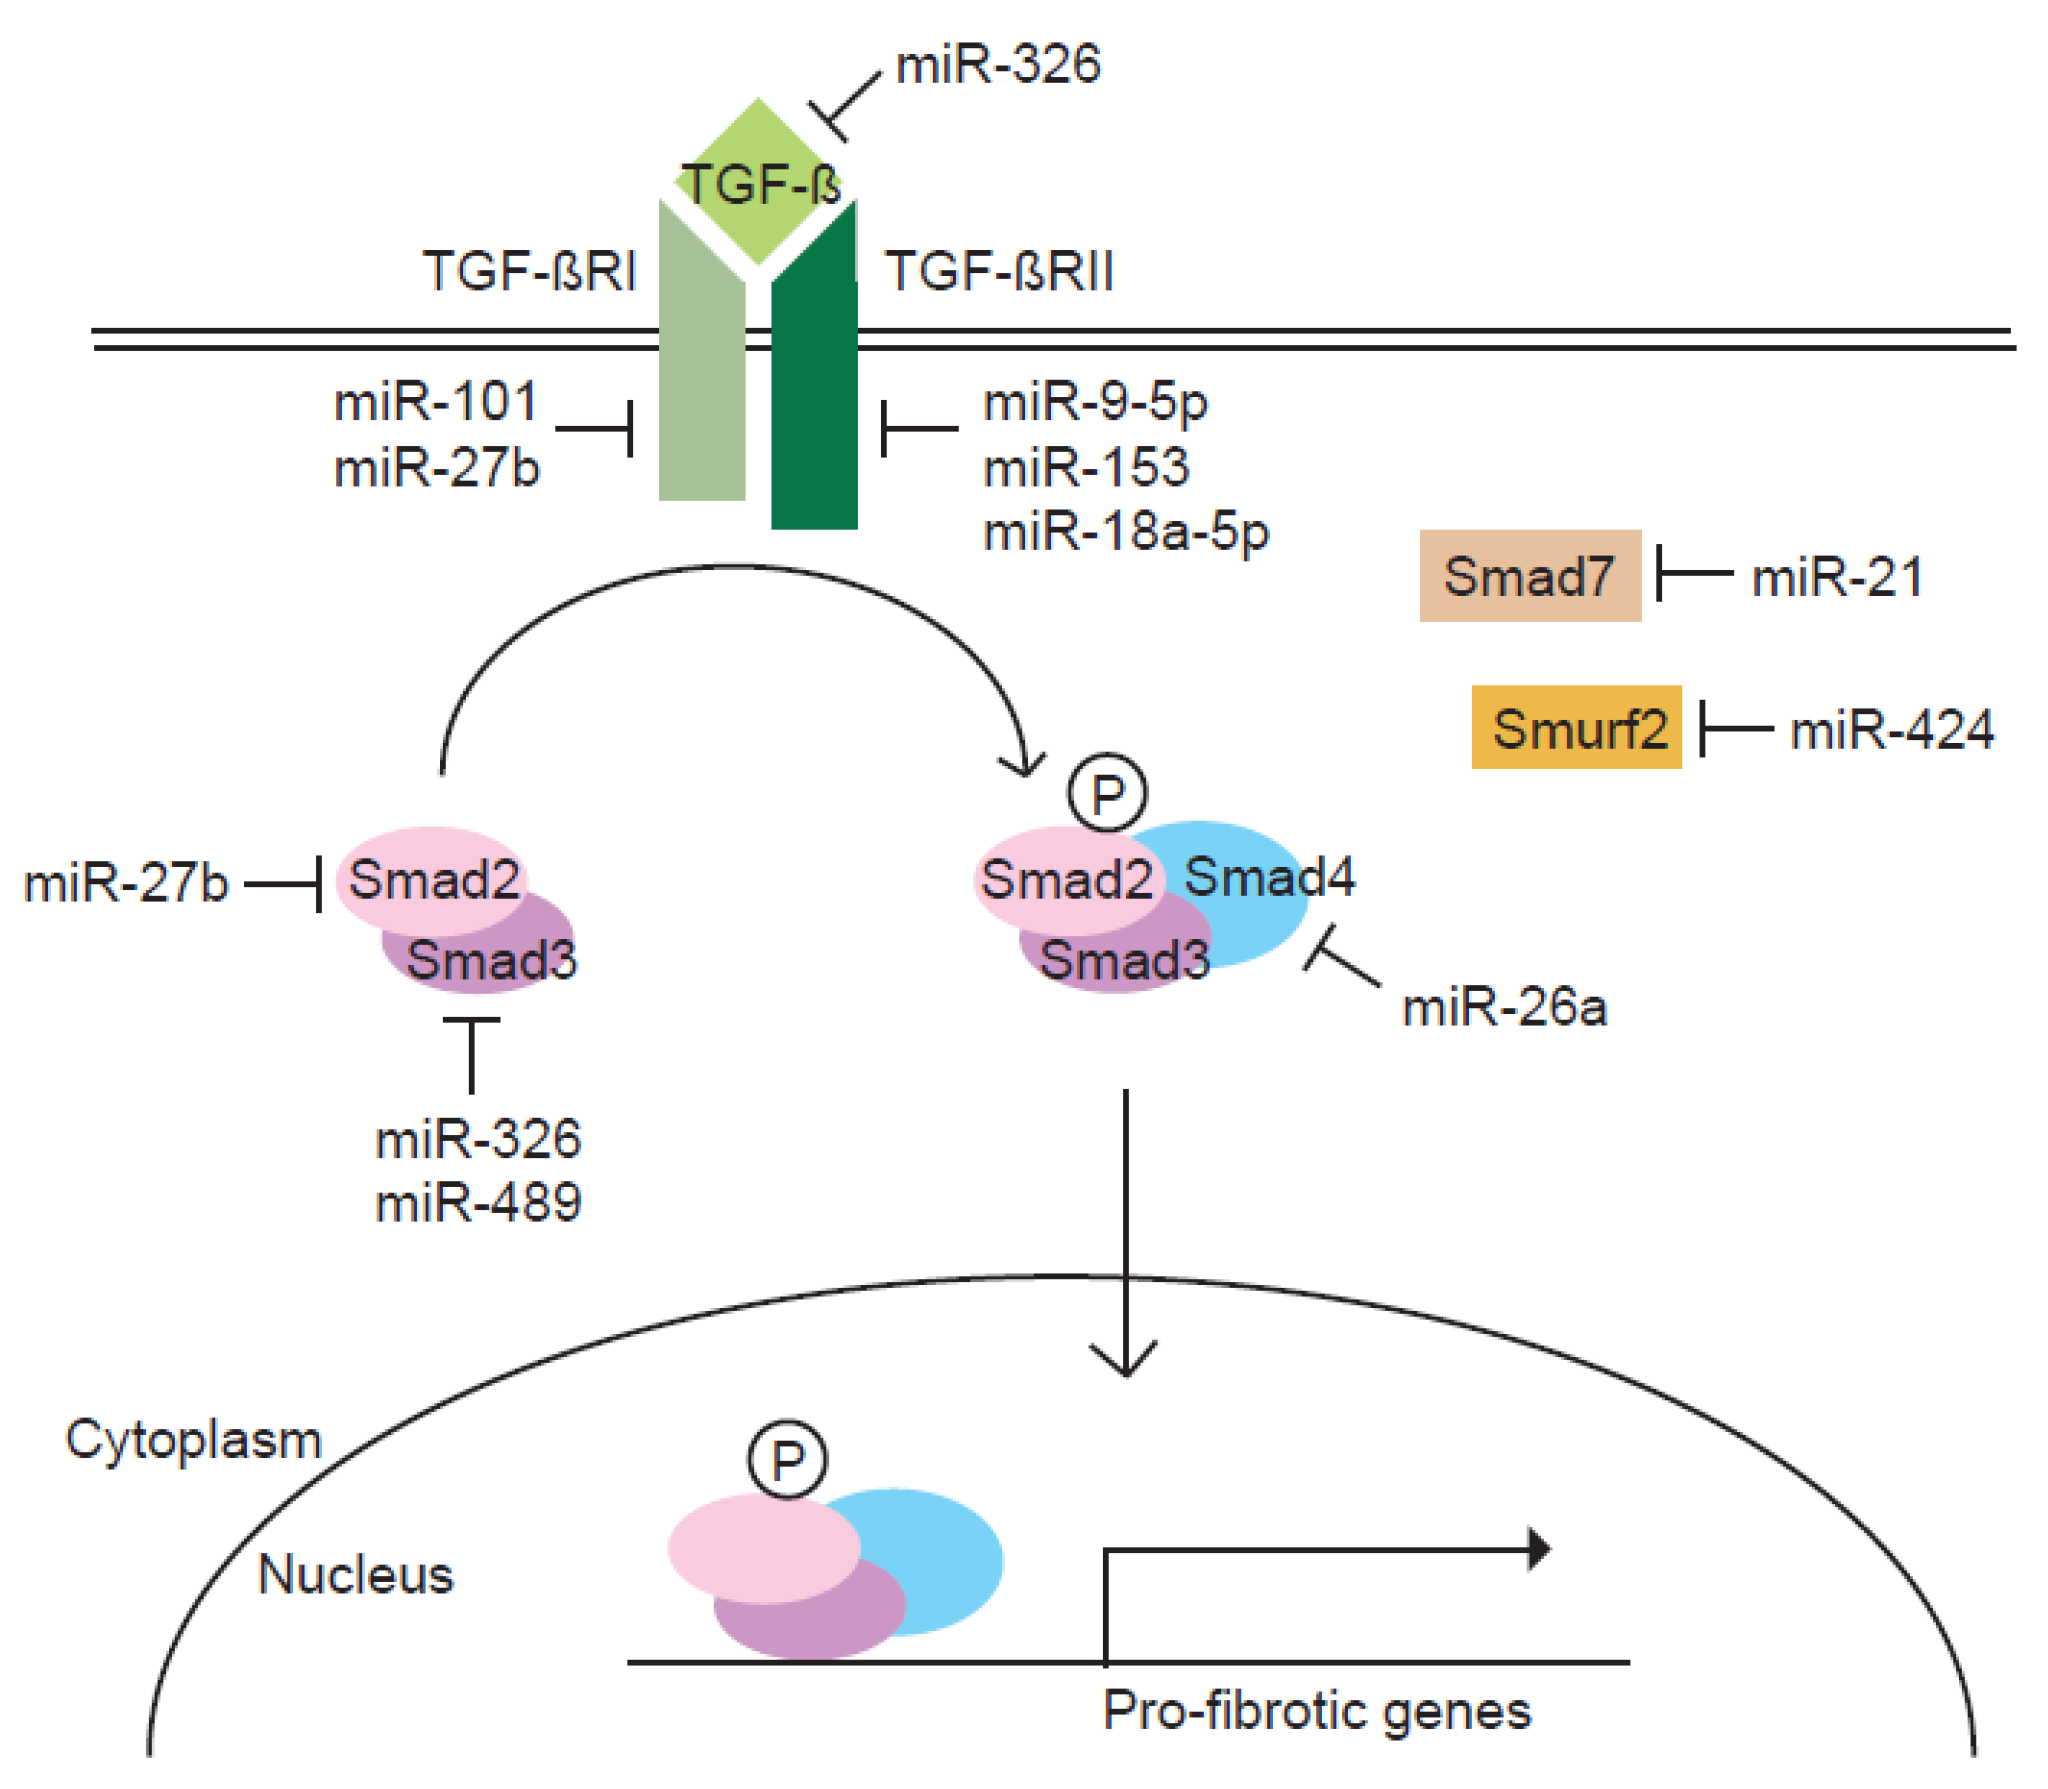 IJMS | Free Full-Text | Role of MicroRNAs in TGF-β Signaling Pathway